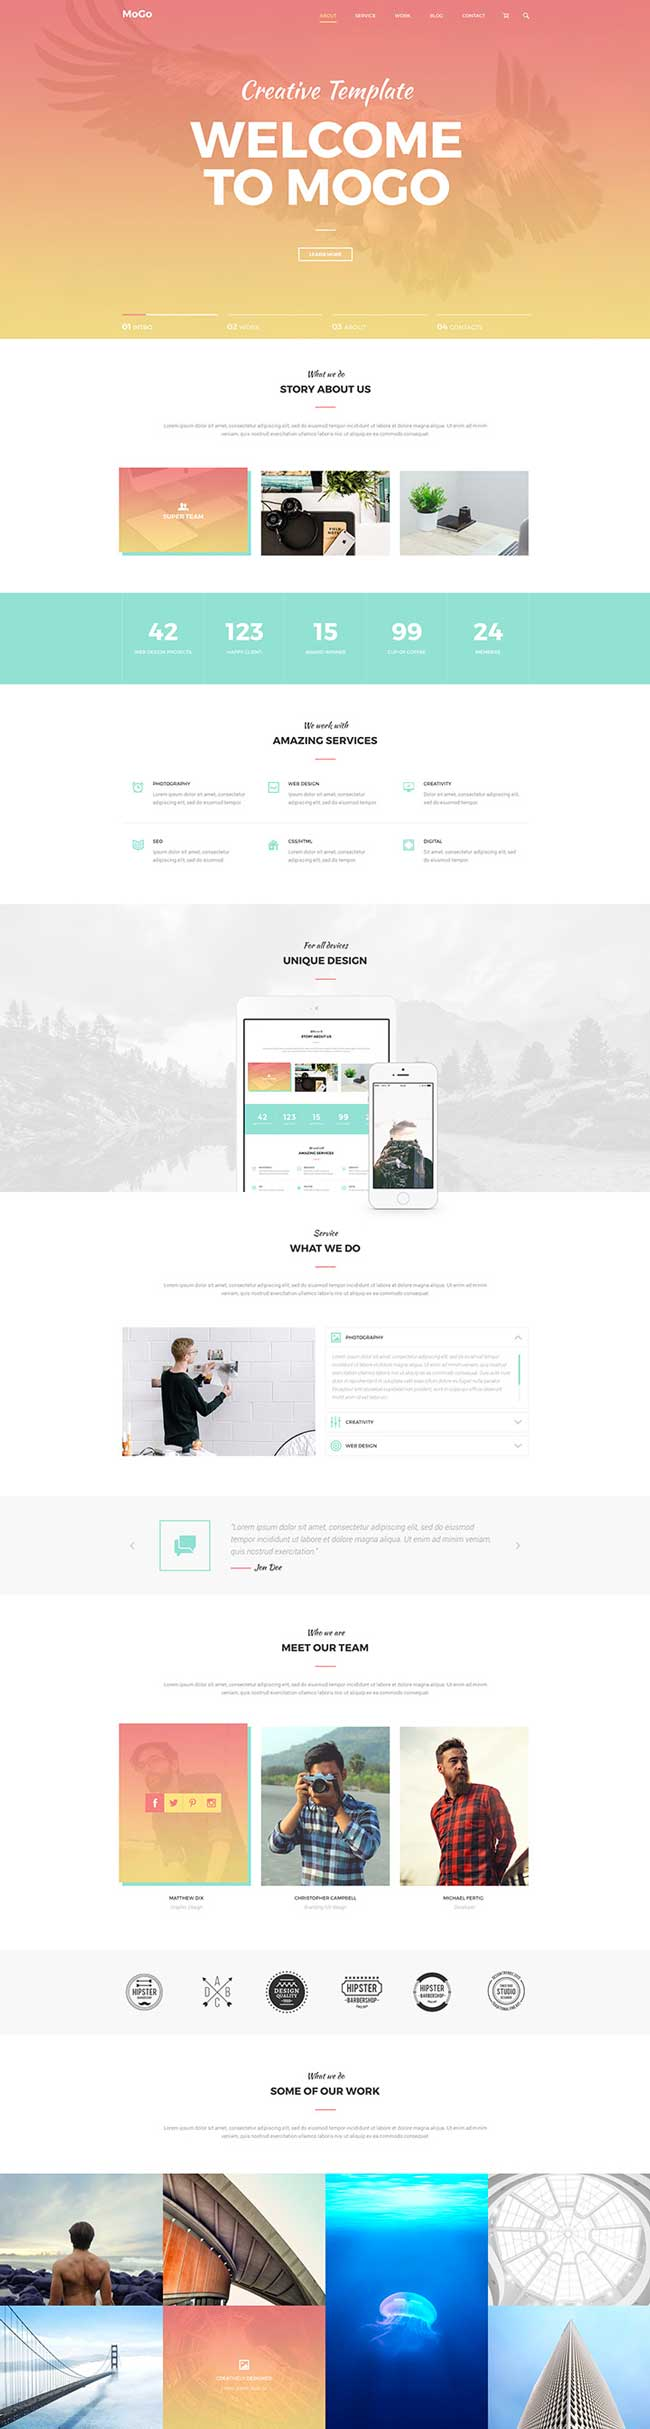 MoGo-Free-One-Page-PSD-Template | Landing Page - ToonLuv | Pinterest